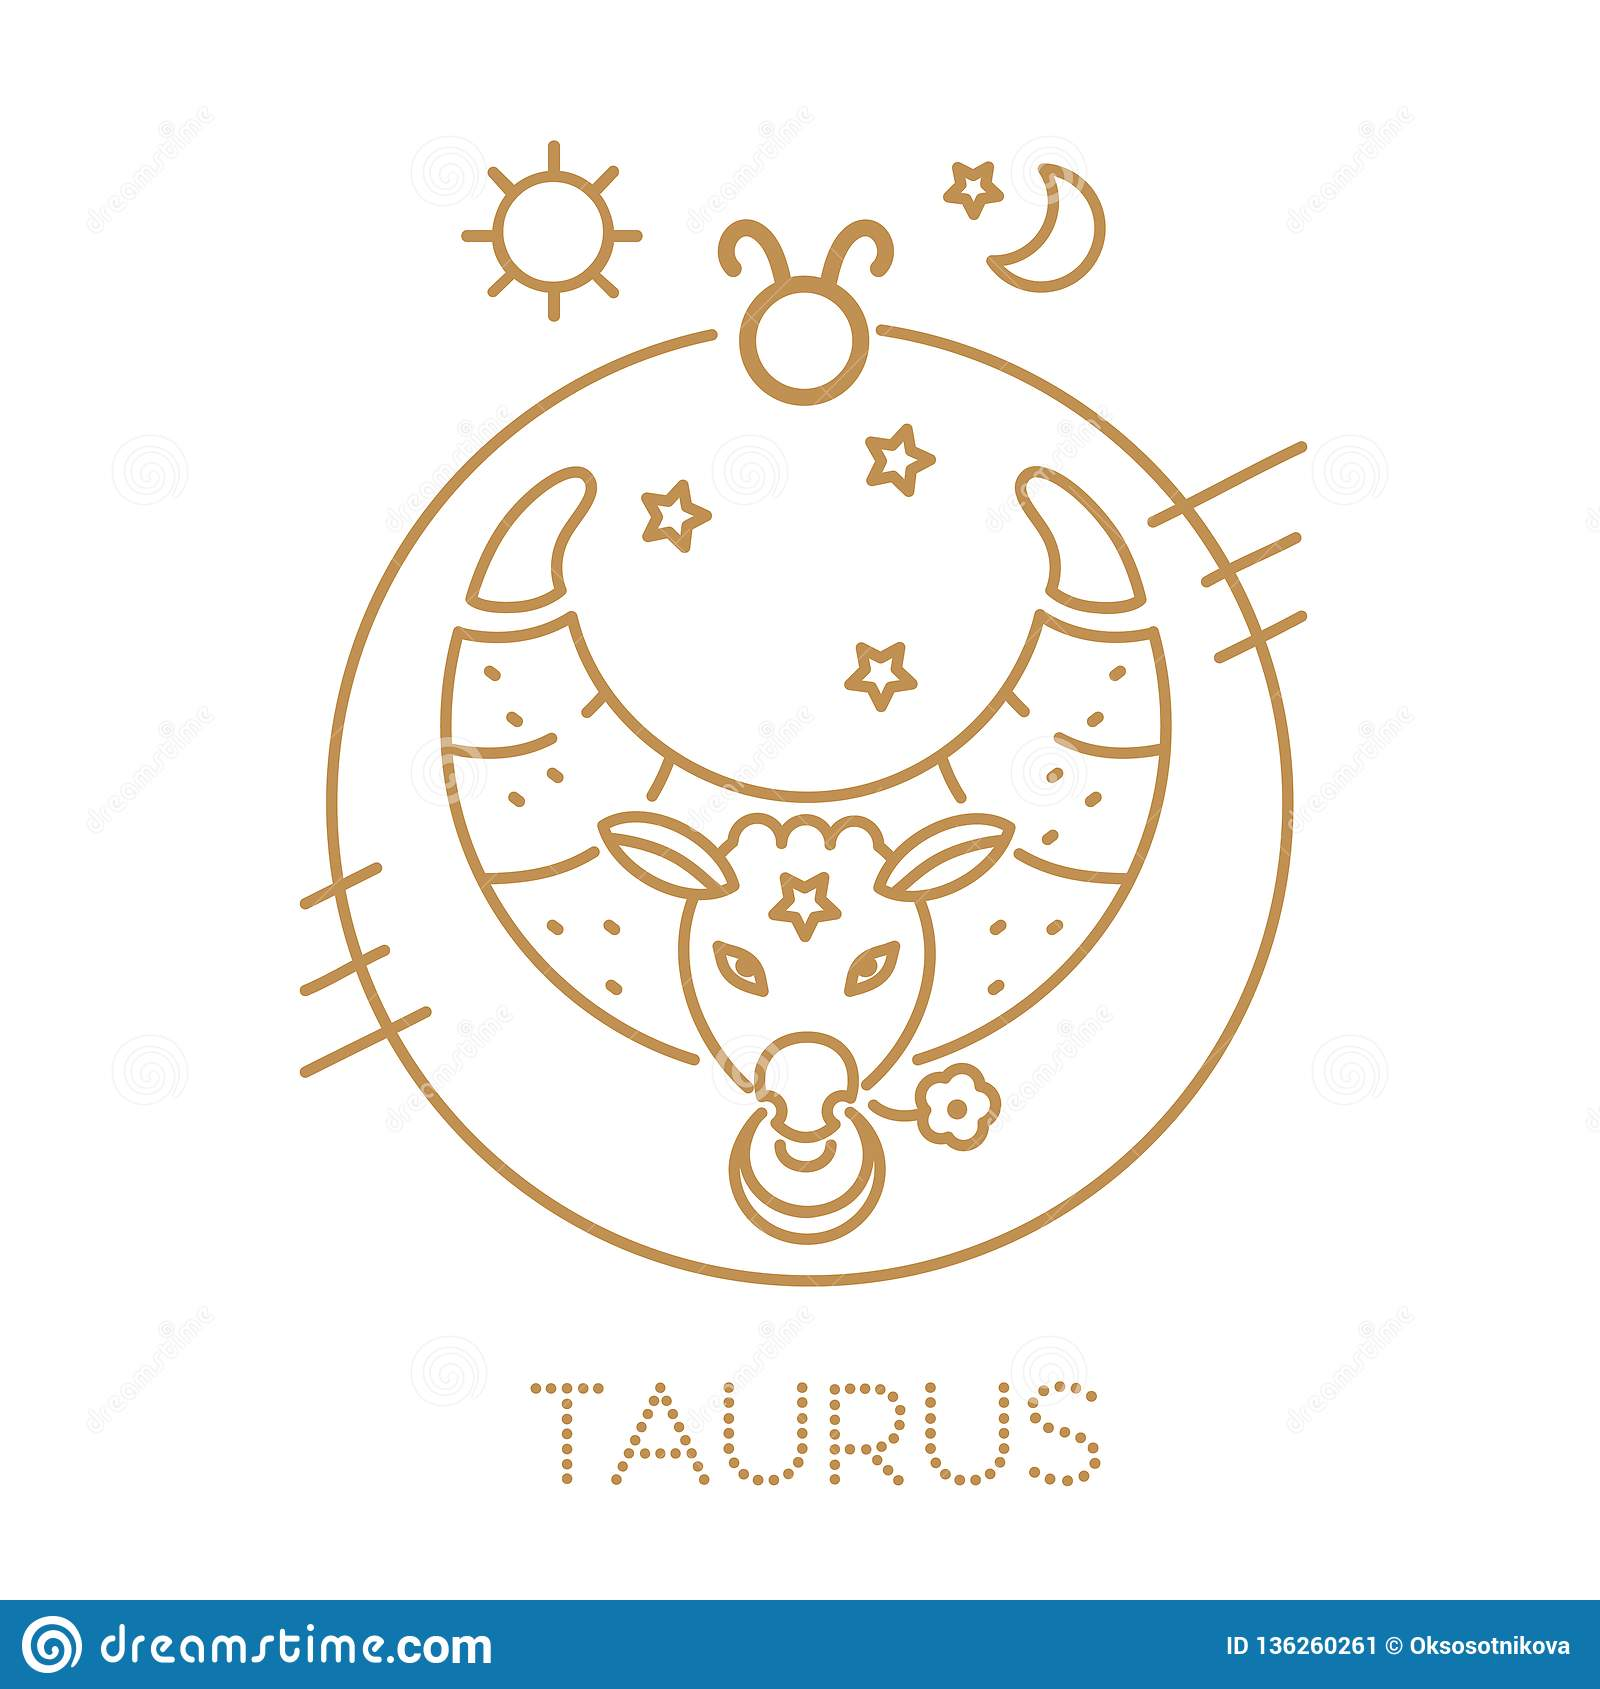 Taurus Zodiac Sign, Logo, Tattoo Or Illustration  Food Horoscope